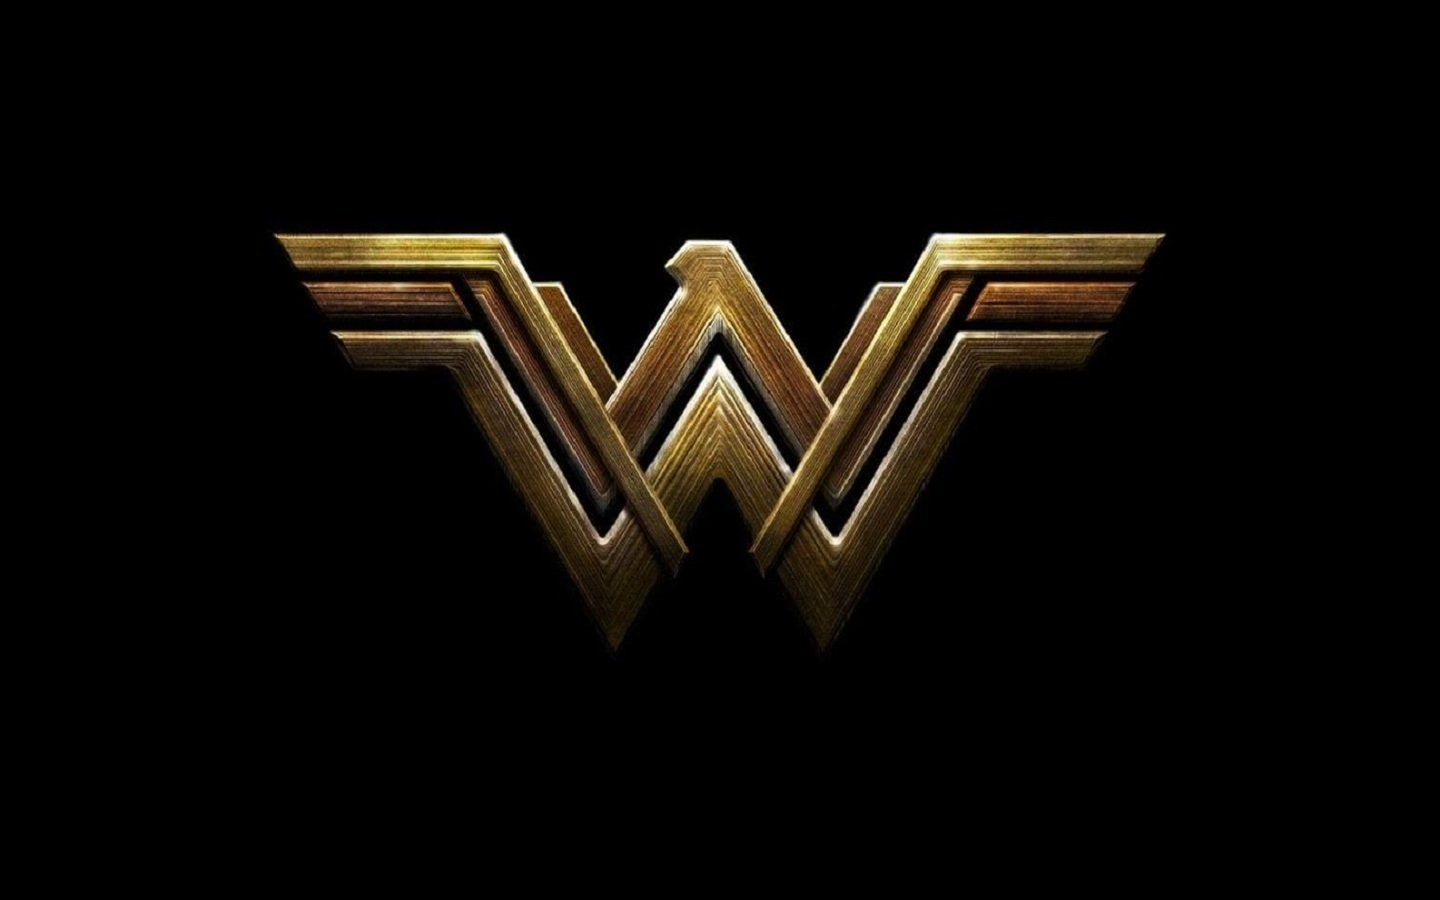 wonder woman gal gadot movie logo fond d'écran and arrière-plan